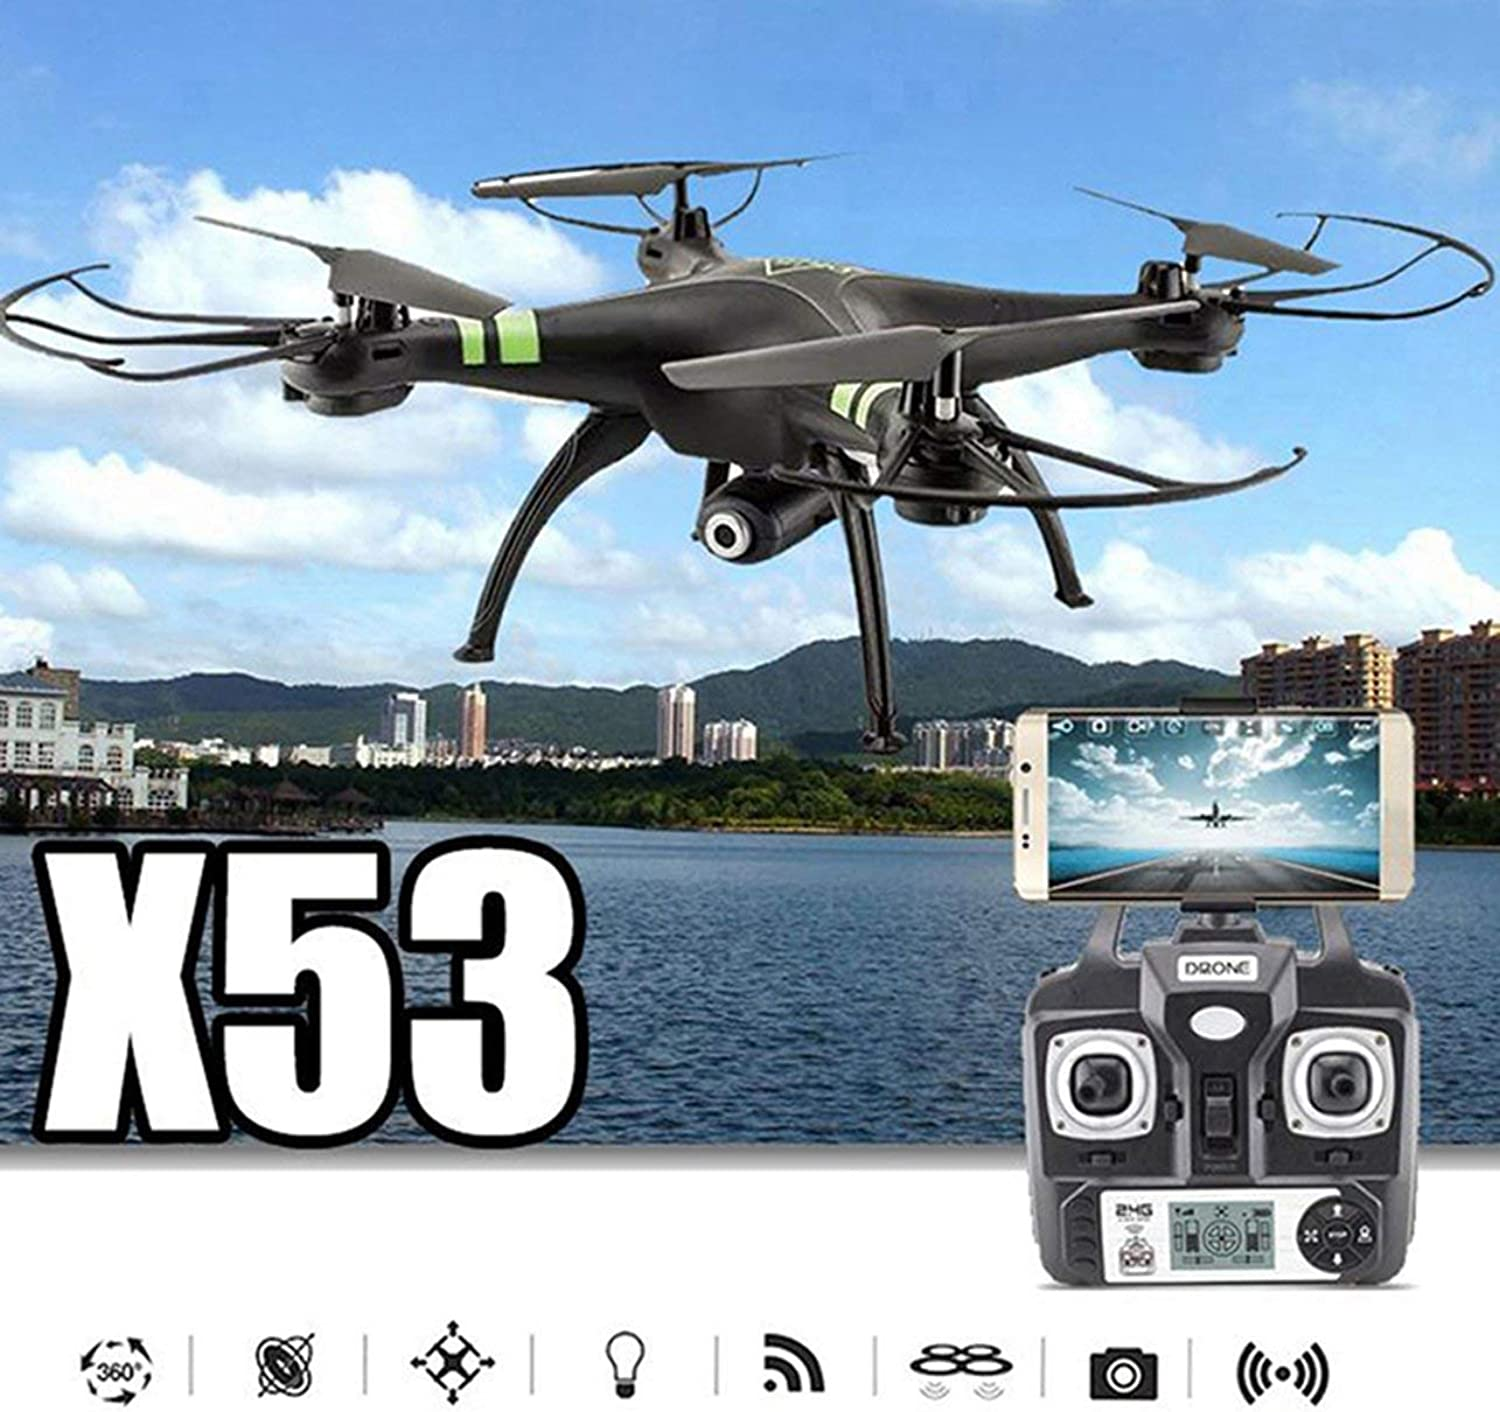 X53 Quadcopter AutoTakeoff Remote Model Airplane 300,000 Pixels Camera(color red)